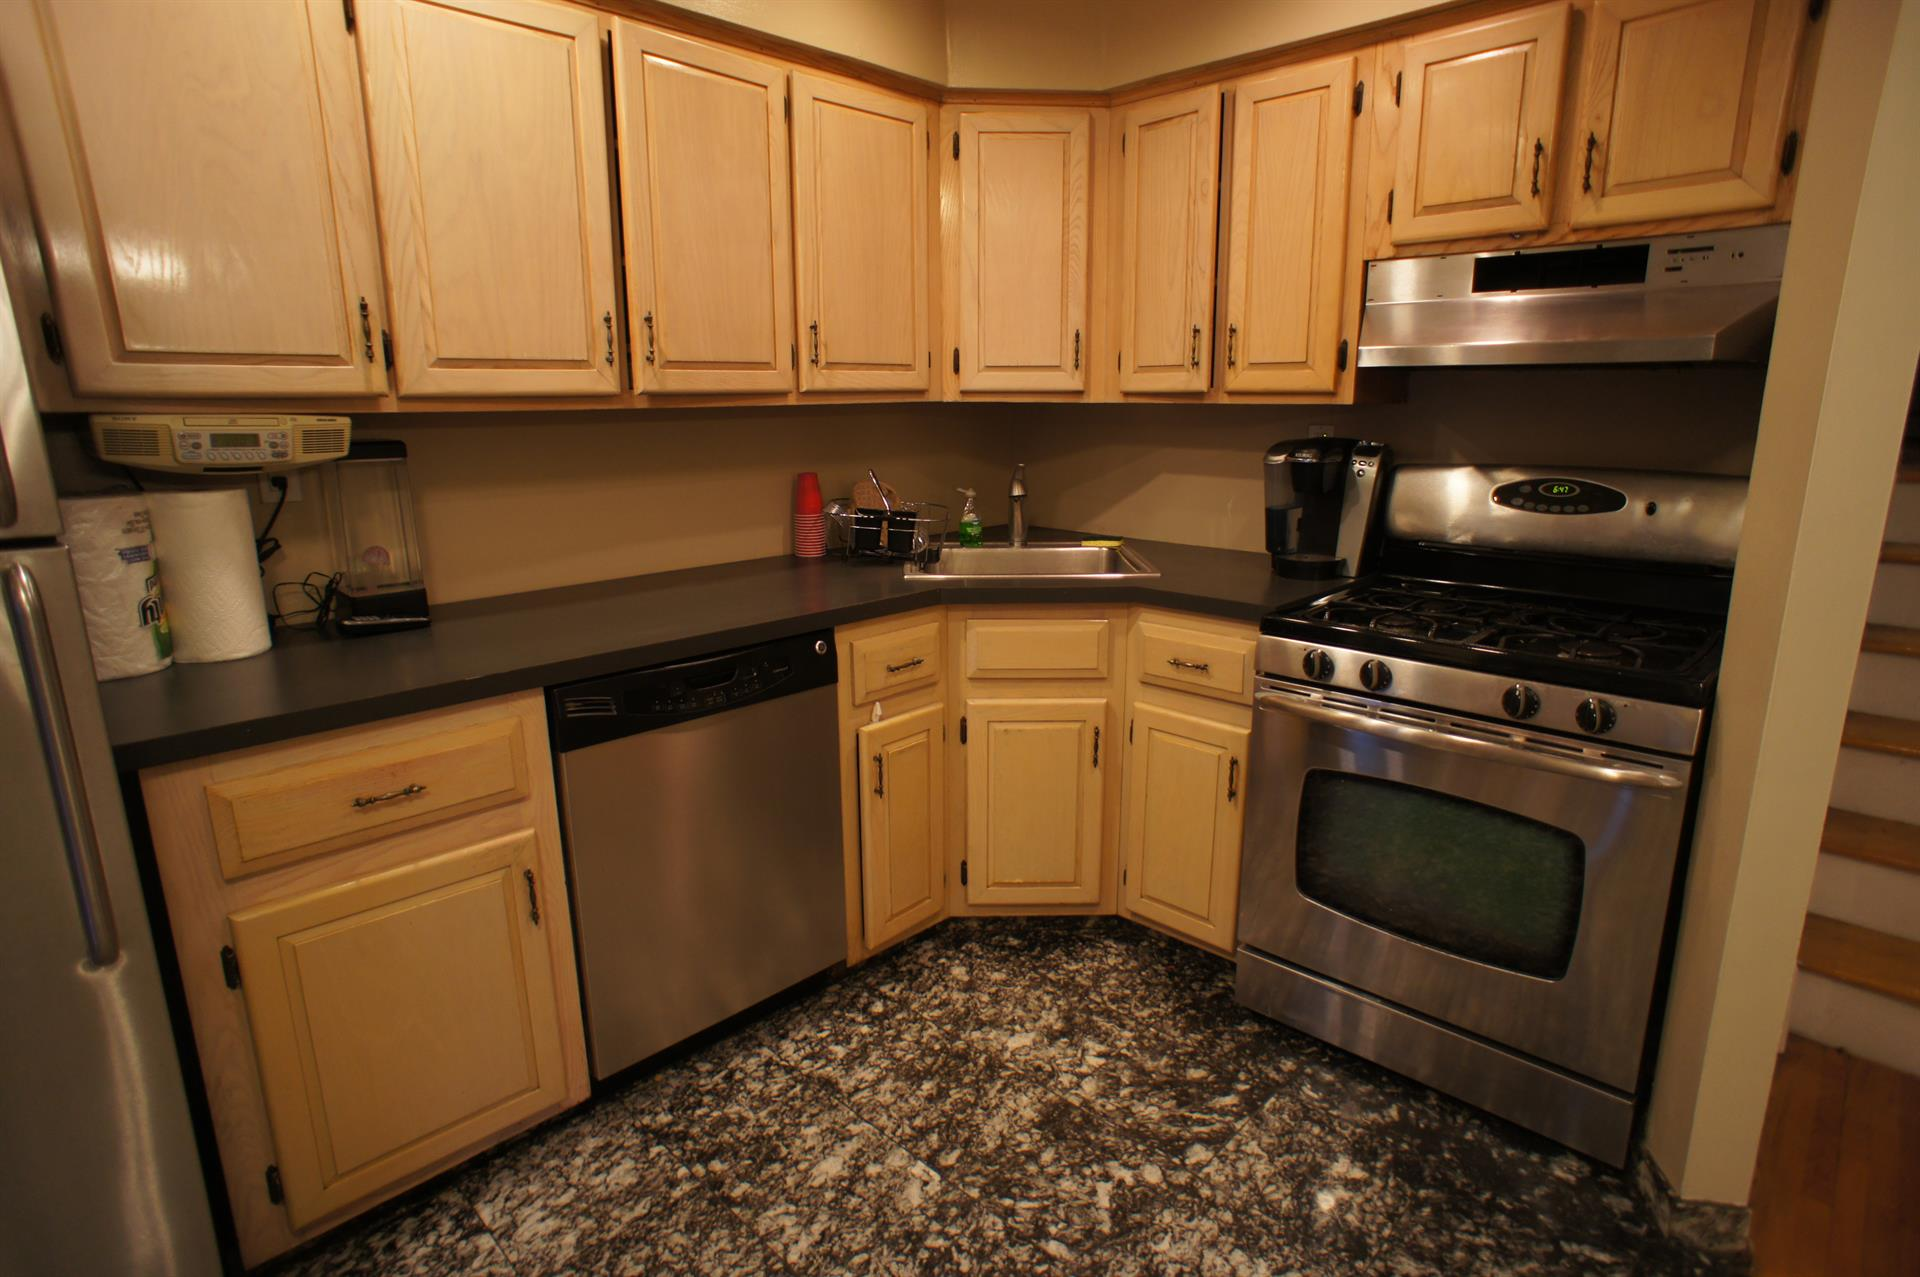 Additional photo for property listing at 9446 Ridge Blvd  Brooklyn, New York 11209 United States